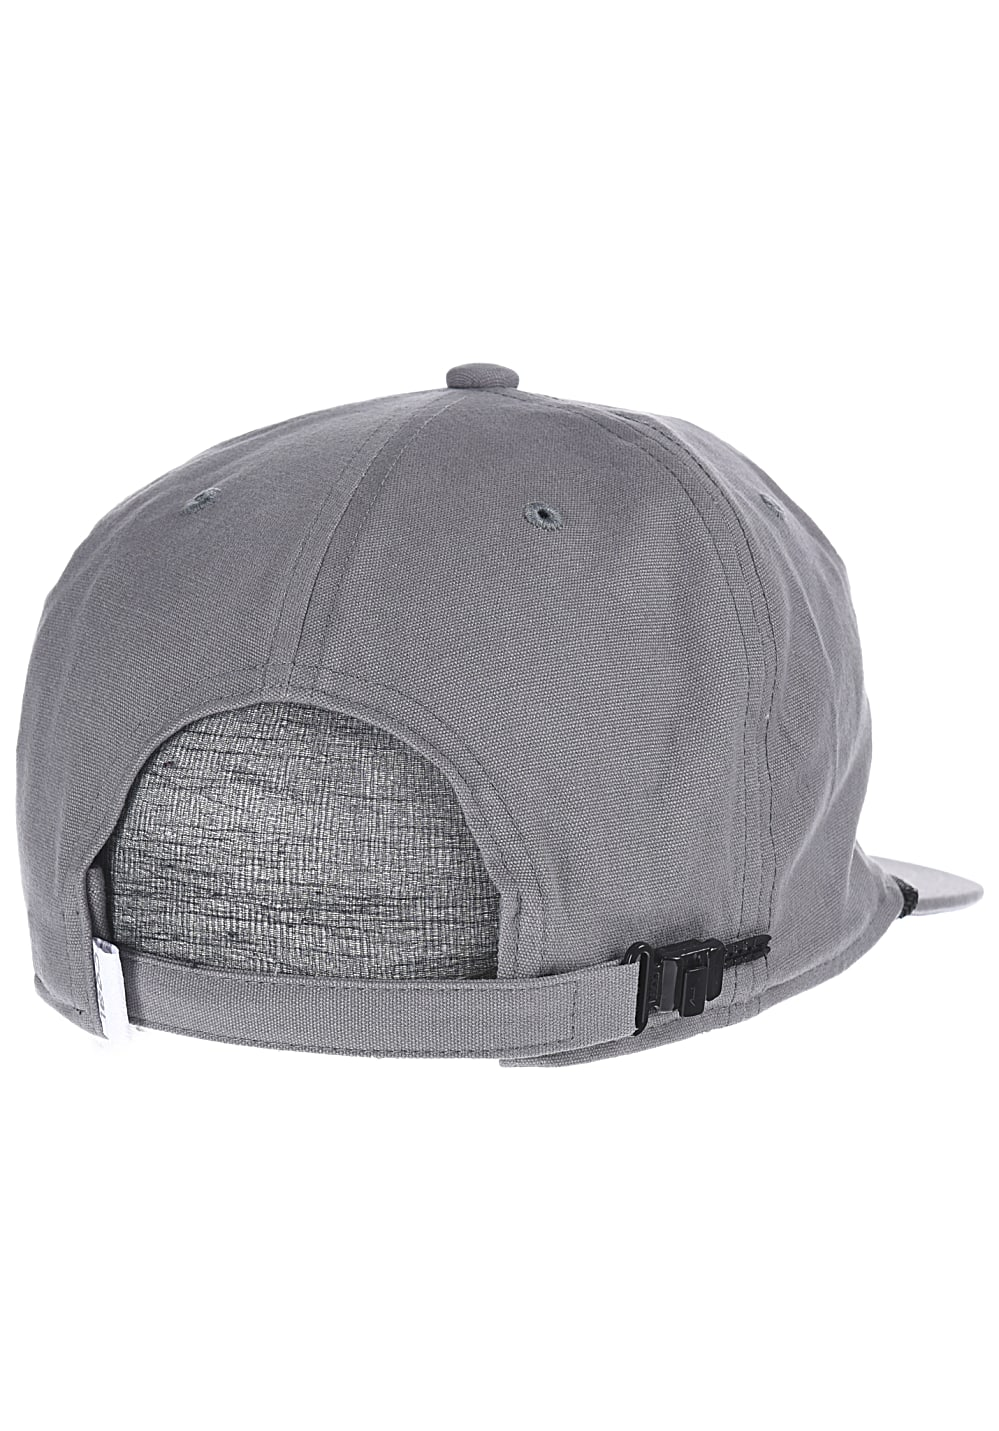 bc37b2eb9d5 Coal The Great Outdoors - Cap für Herren - Grau - Planet Sports